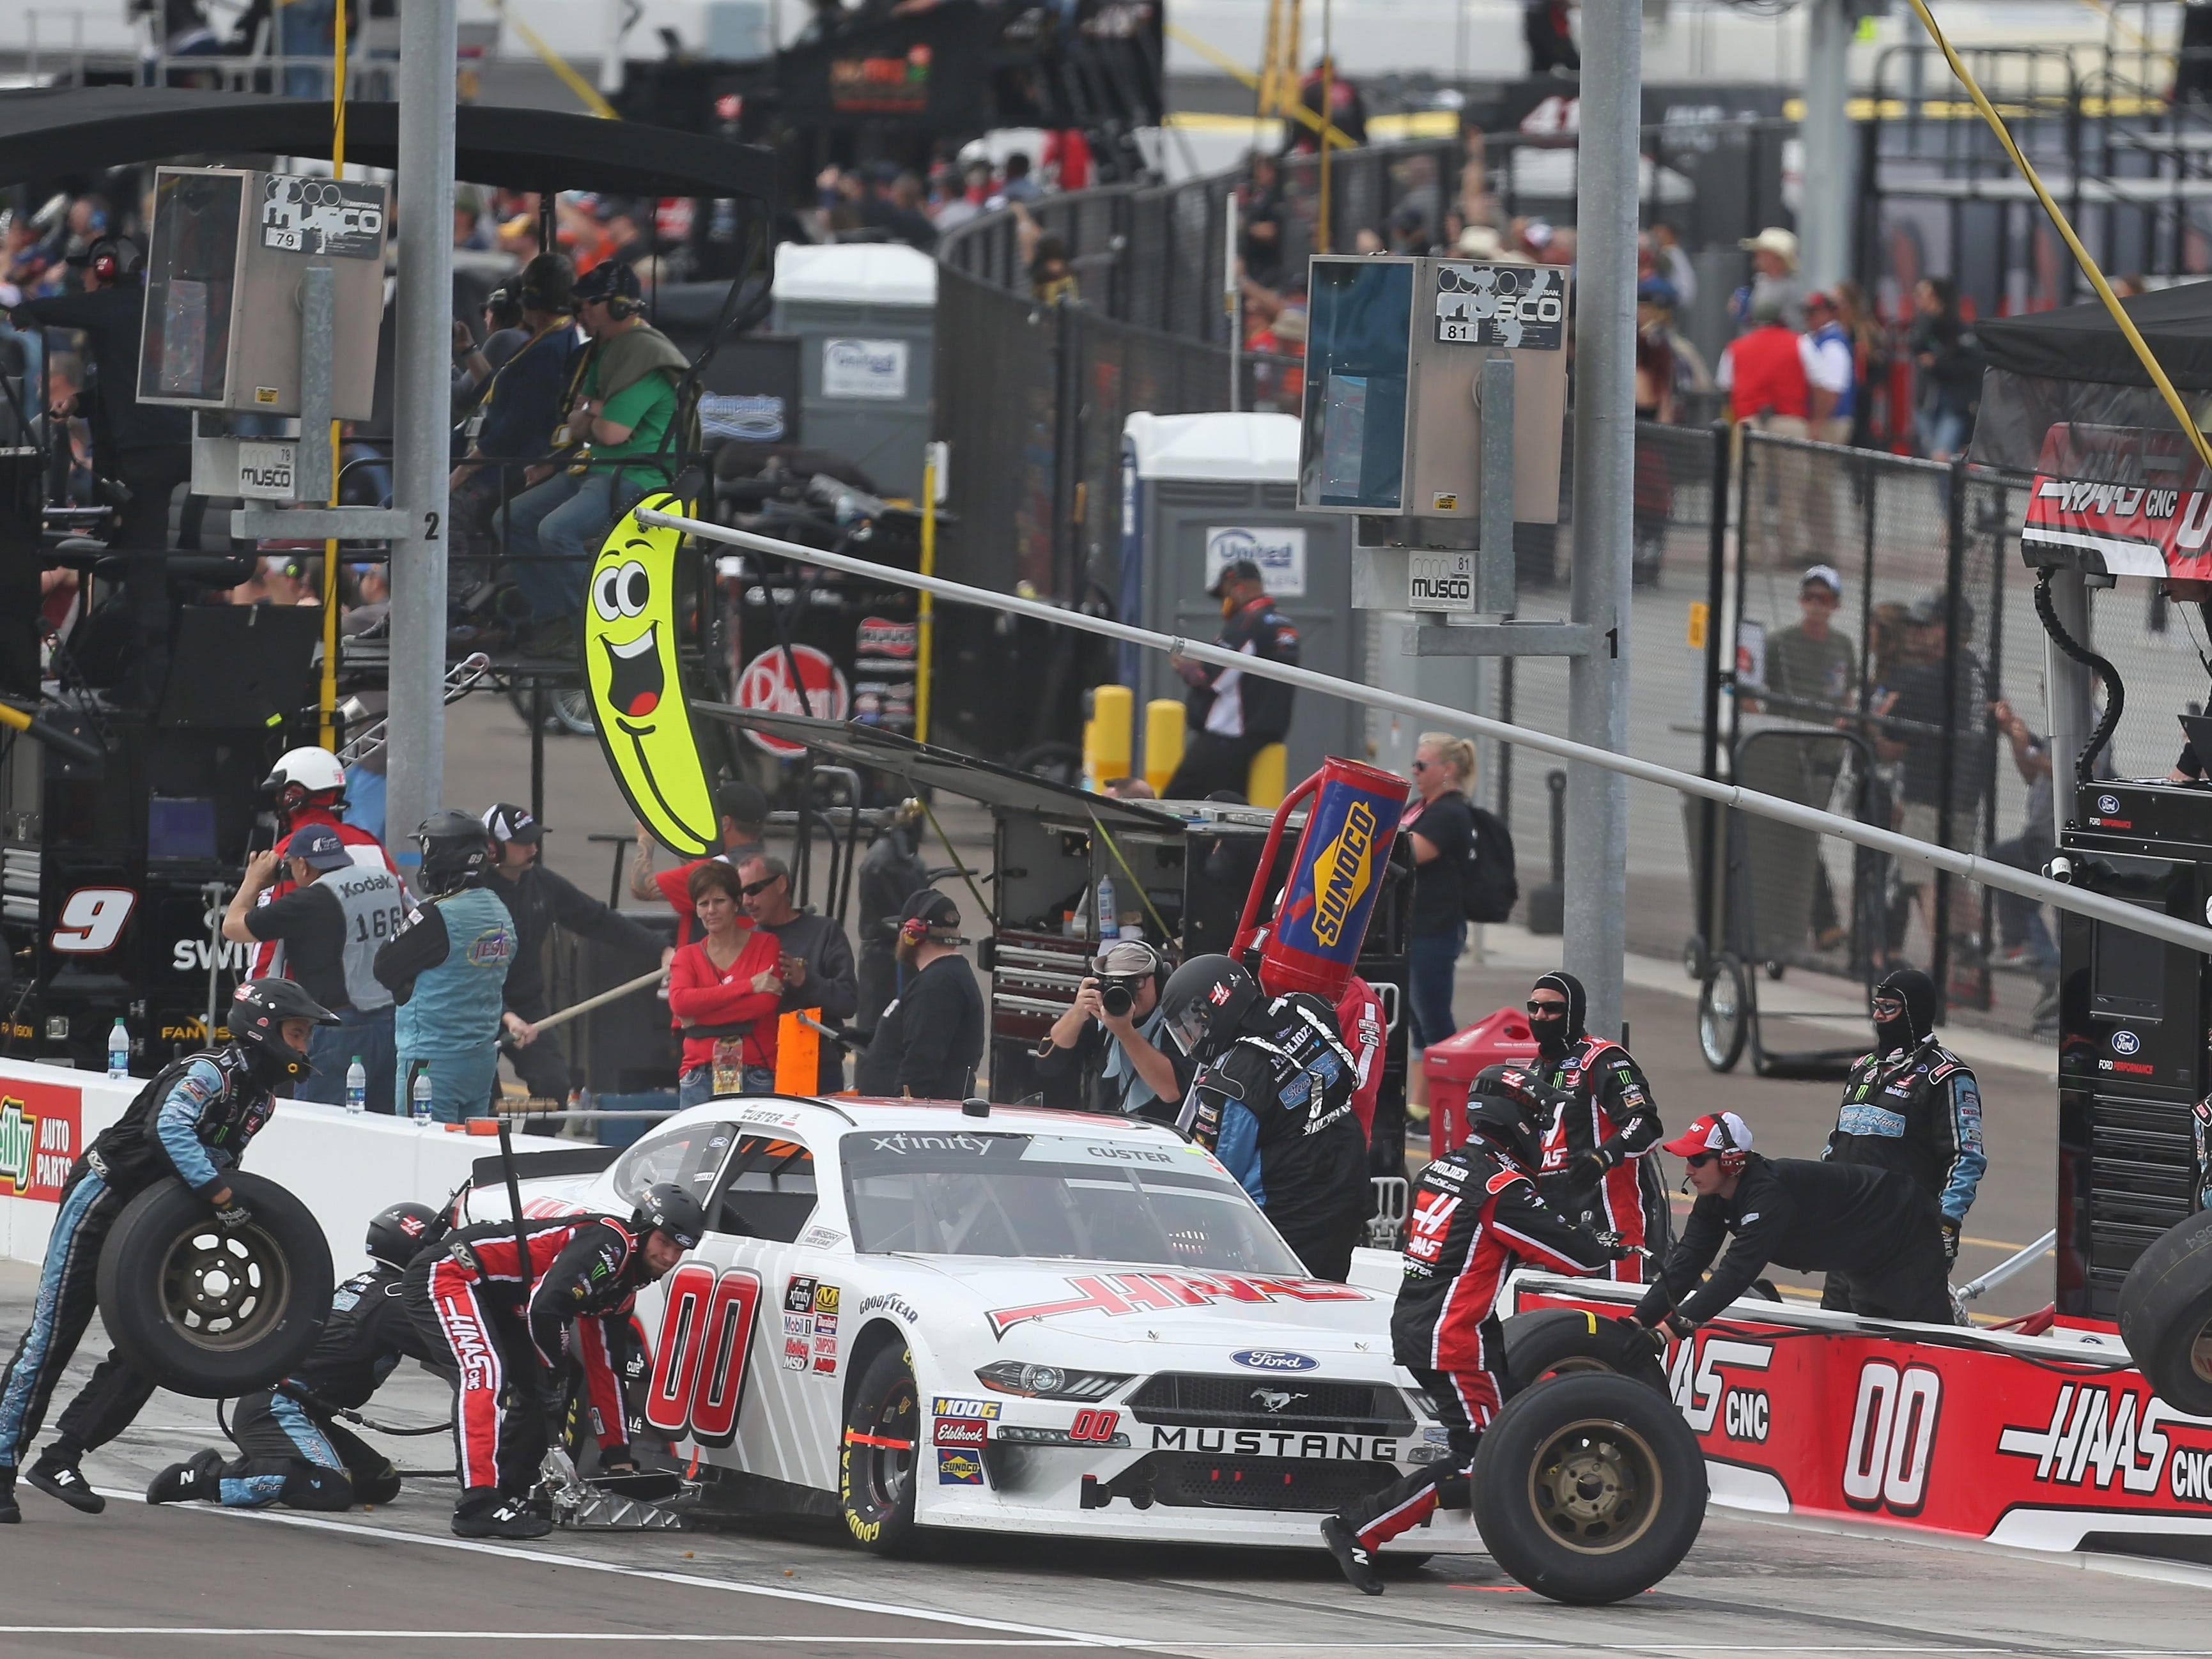 AVONDALE, AZ - MARCH 09:  Cole Custer, driver of the #00 Haas Automation Ford, pits during the NASCAR Xfinity Series iK9 Service Dog 200 at ISM Raceway on March 9, 2019 in Avondale, Arizona.